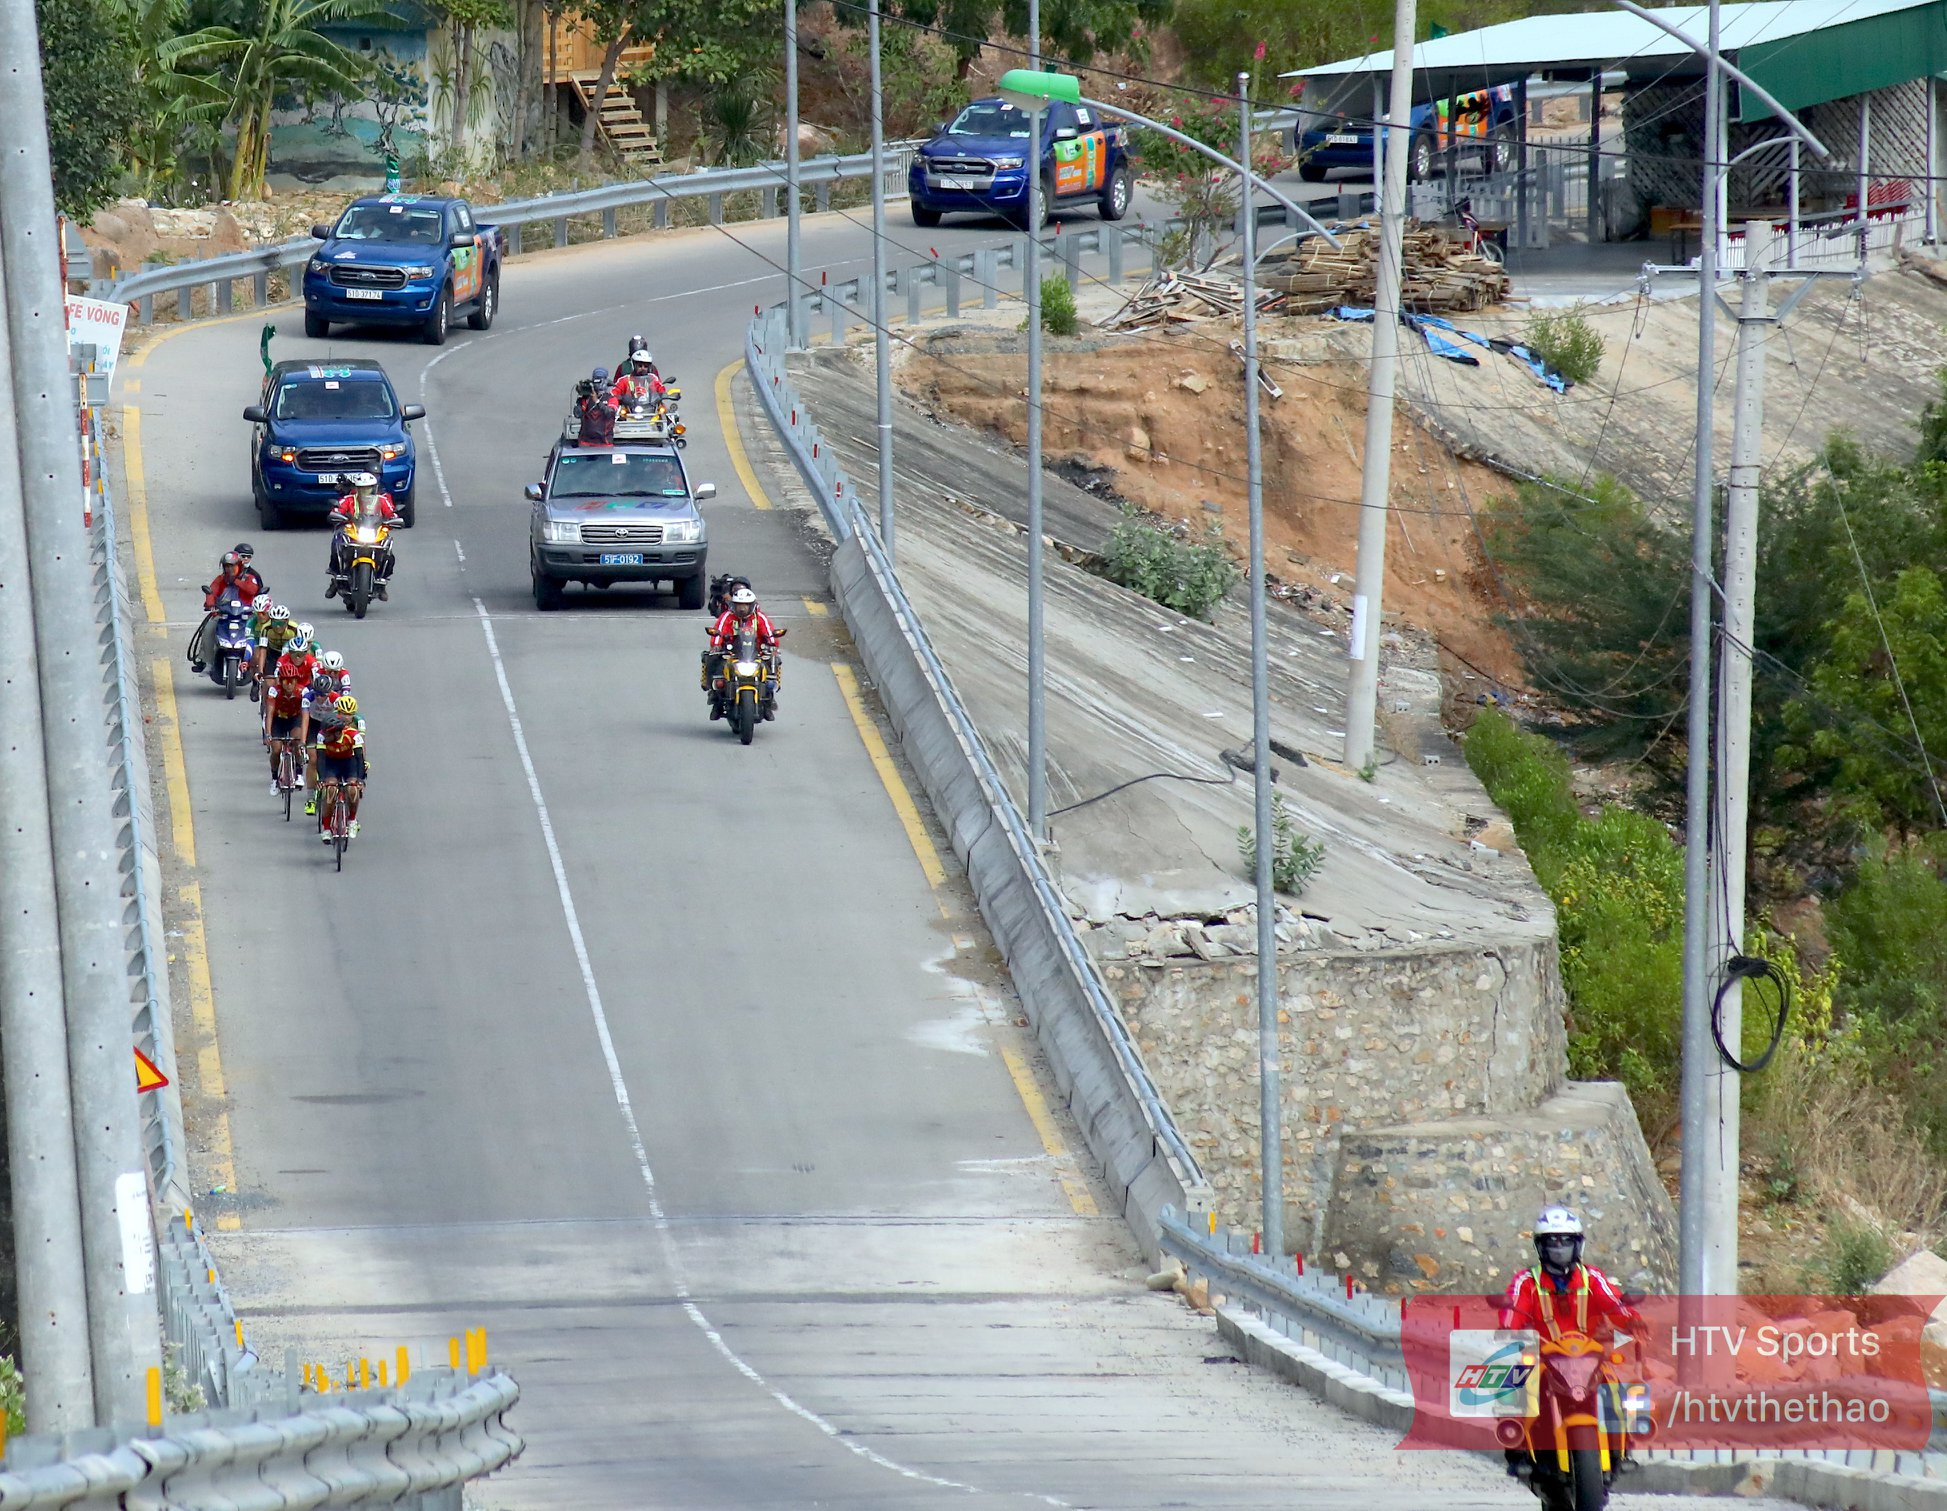 Cyclists race in the 14th stage of the annual HTV Cup organized by Ho Chi Minh City Television, June 3, 2020. Photo: HTV